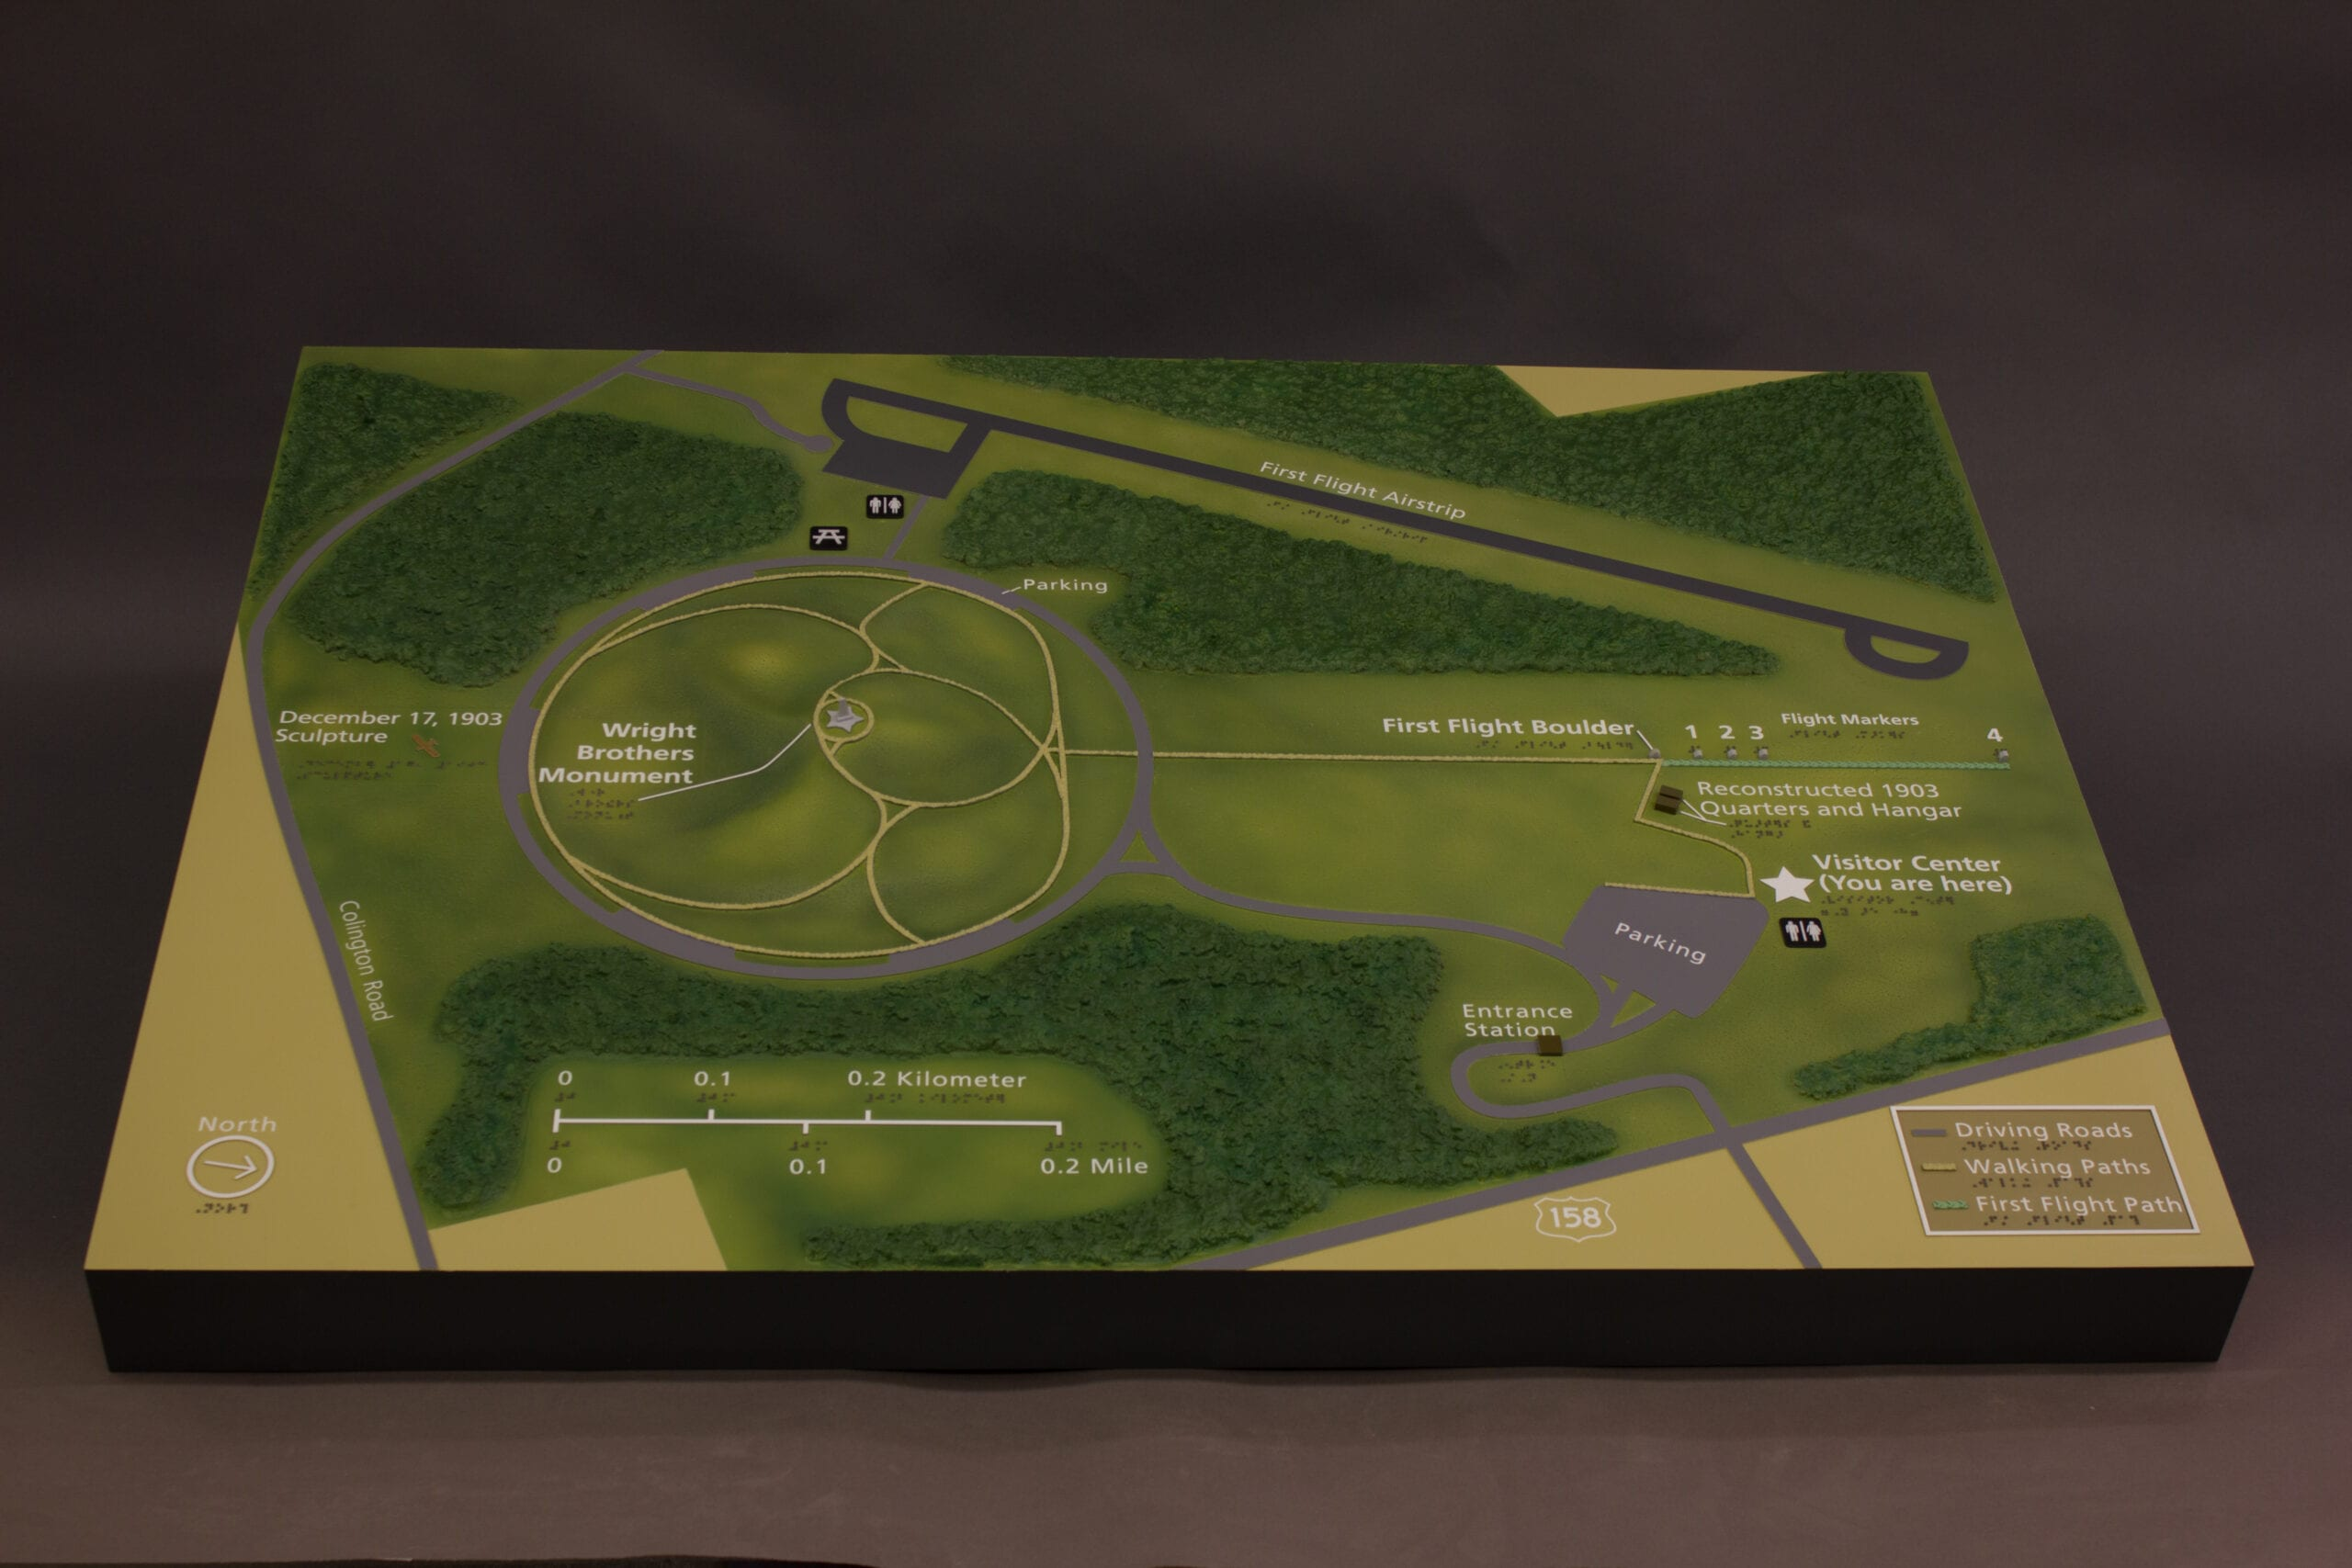 Wright Brothers National Memorial scaled terrain model showing the site of the first controlled powered flight in December of 1903